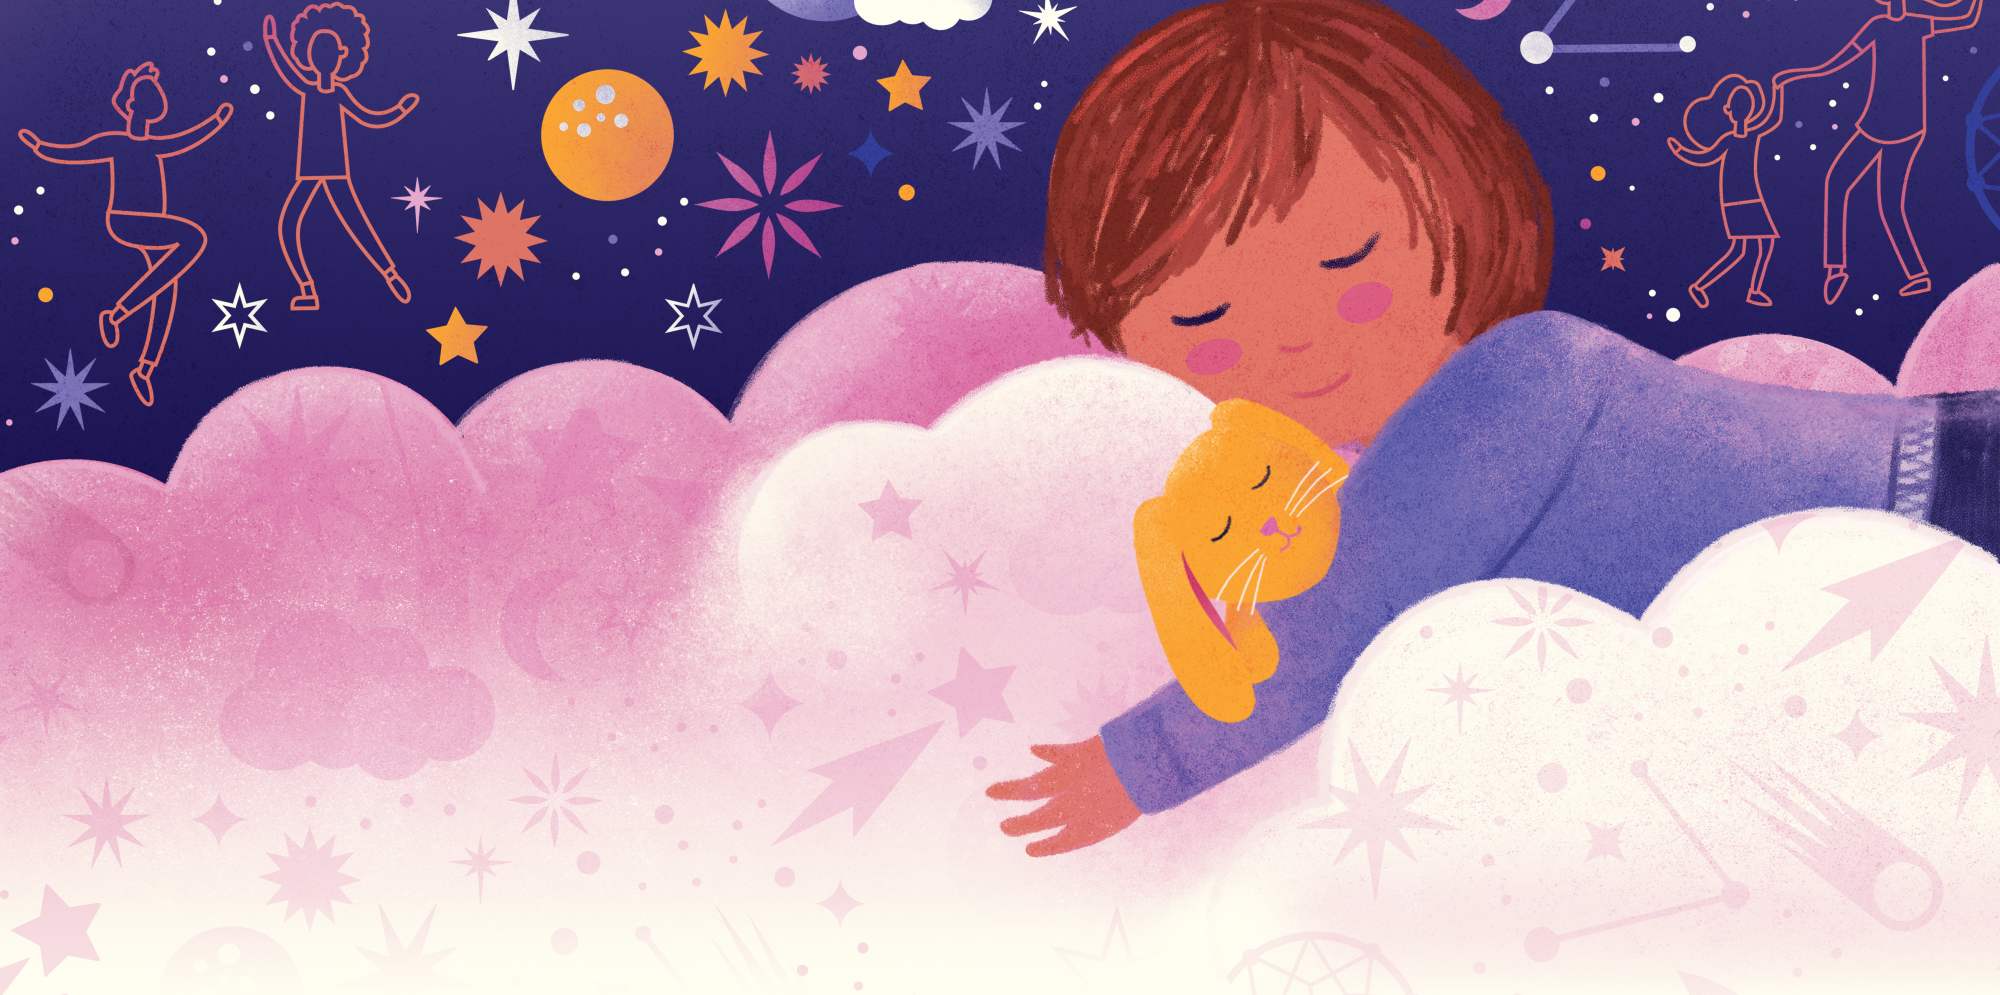 a child is asleep on a cloud